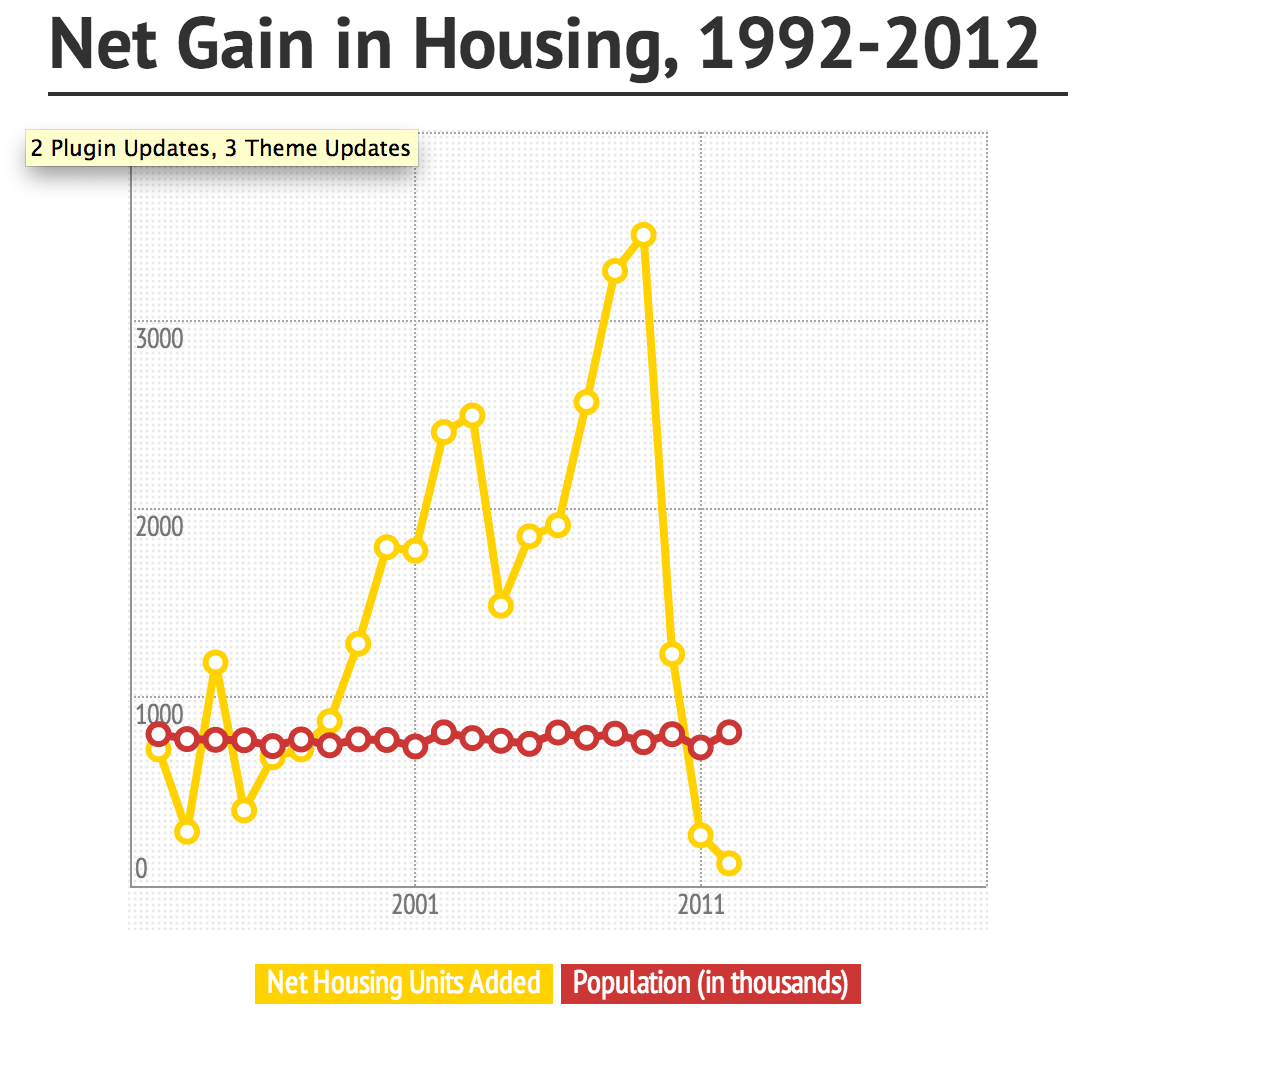 Housing Stock by the Numbers